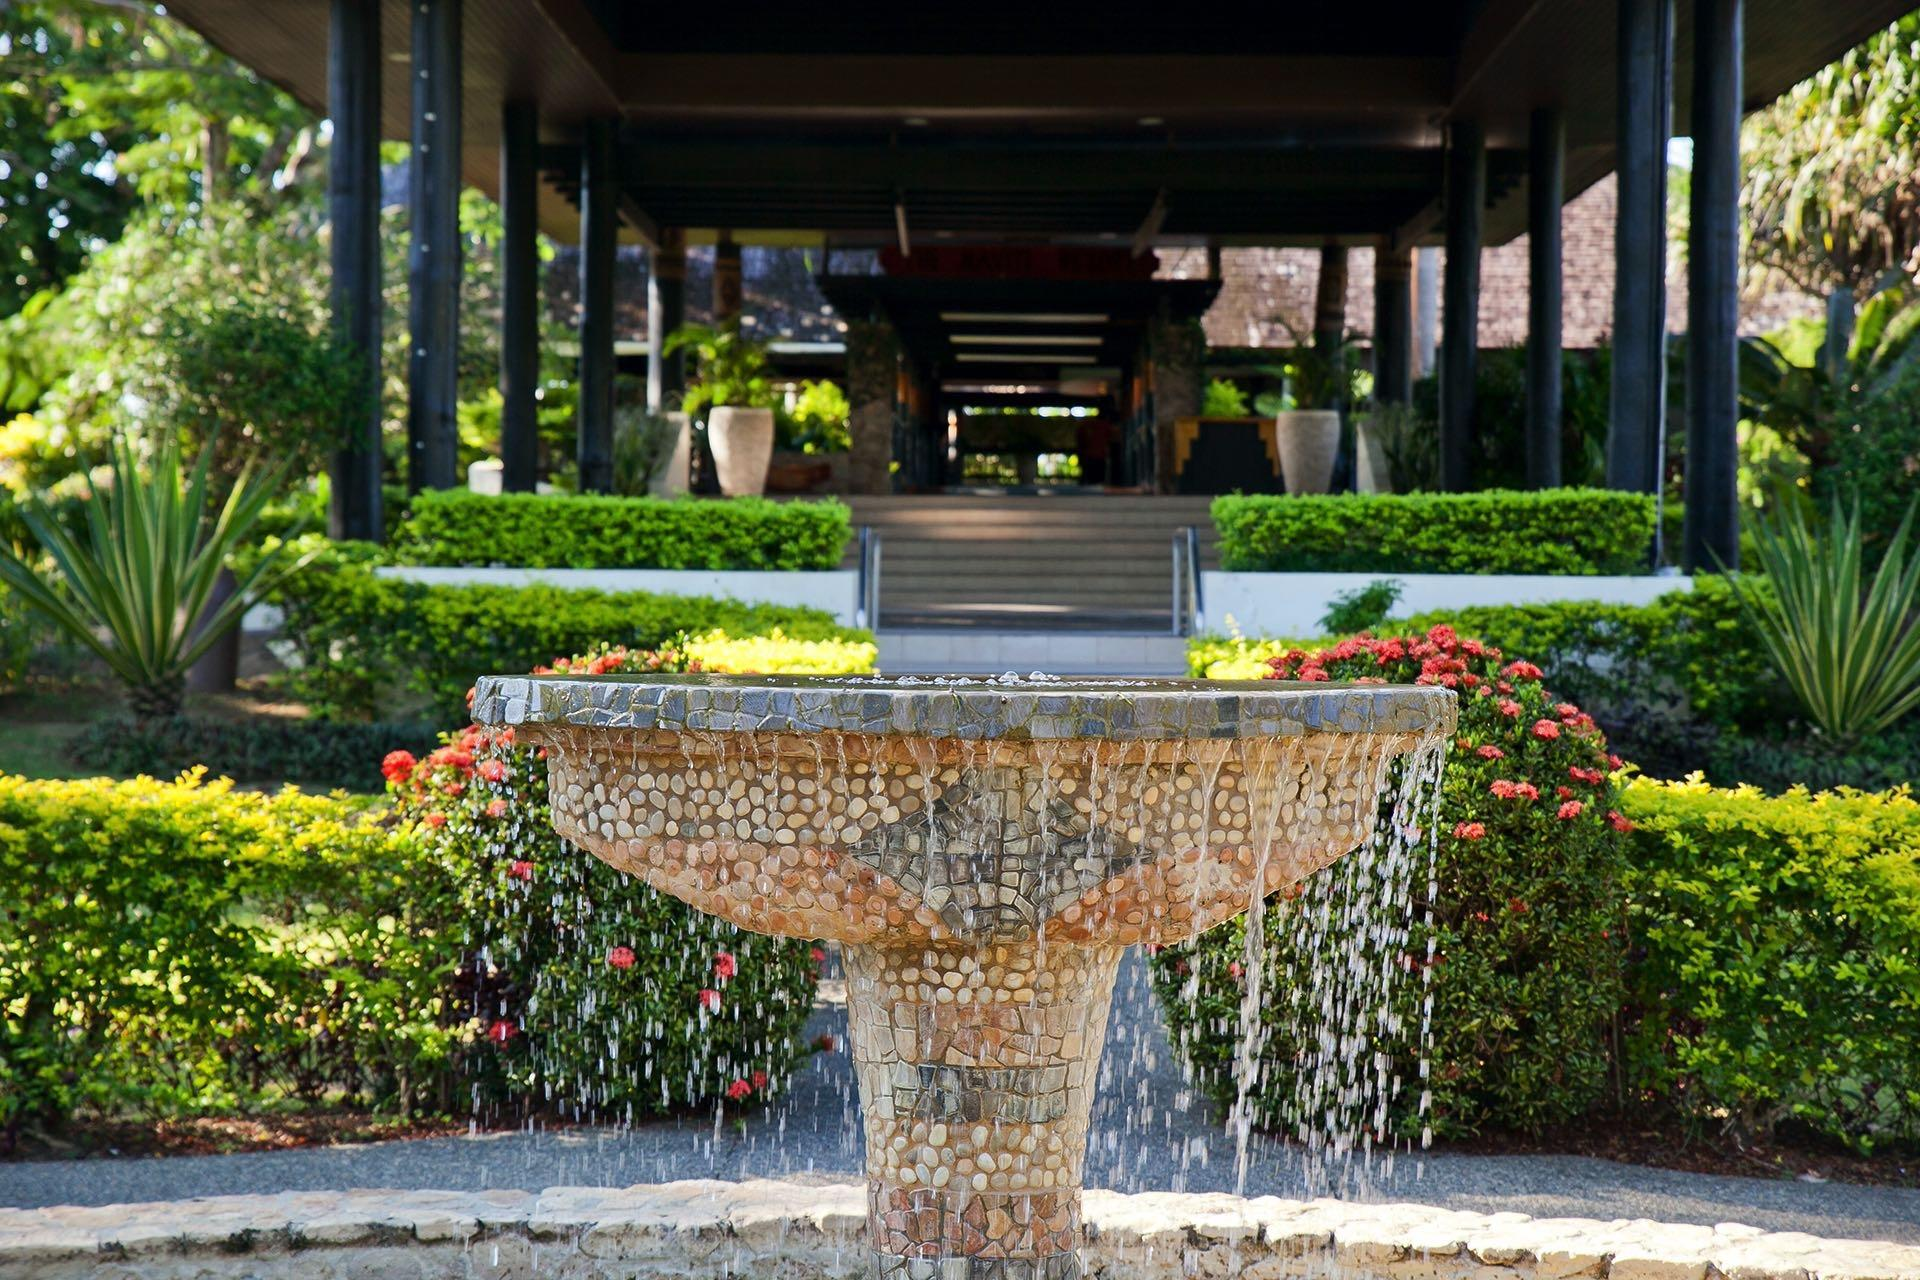 Fountain at Naviti Resort